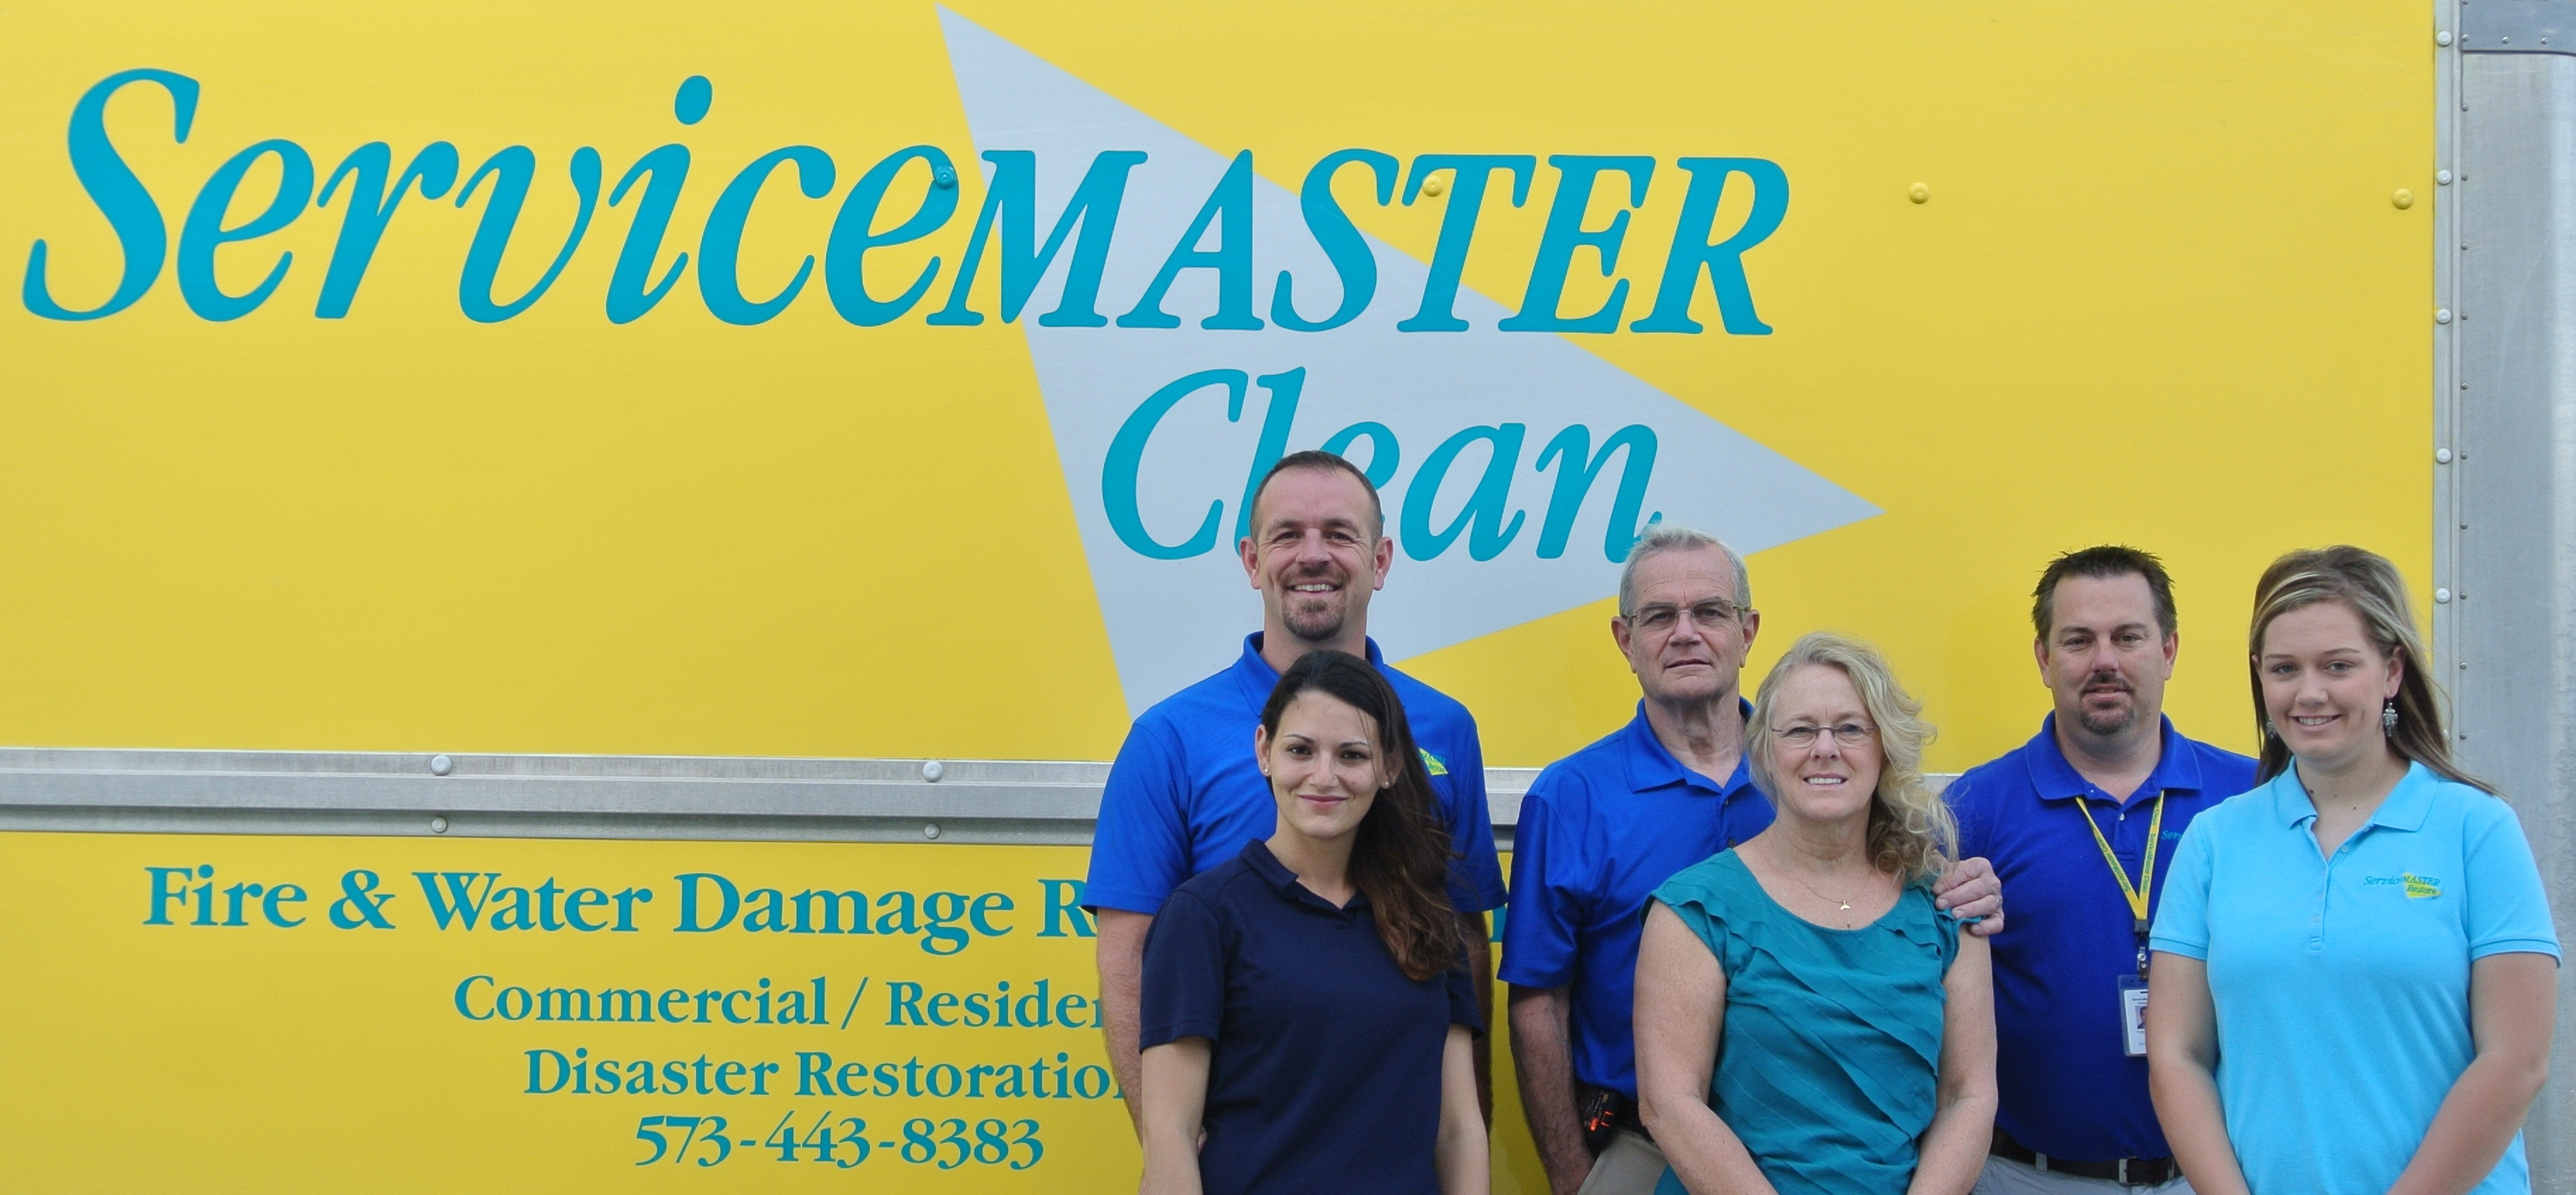 Family is satisfied with mold removal in Columbia, MO